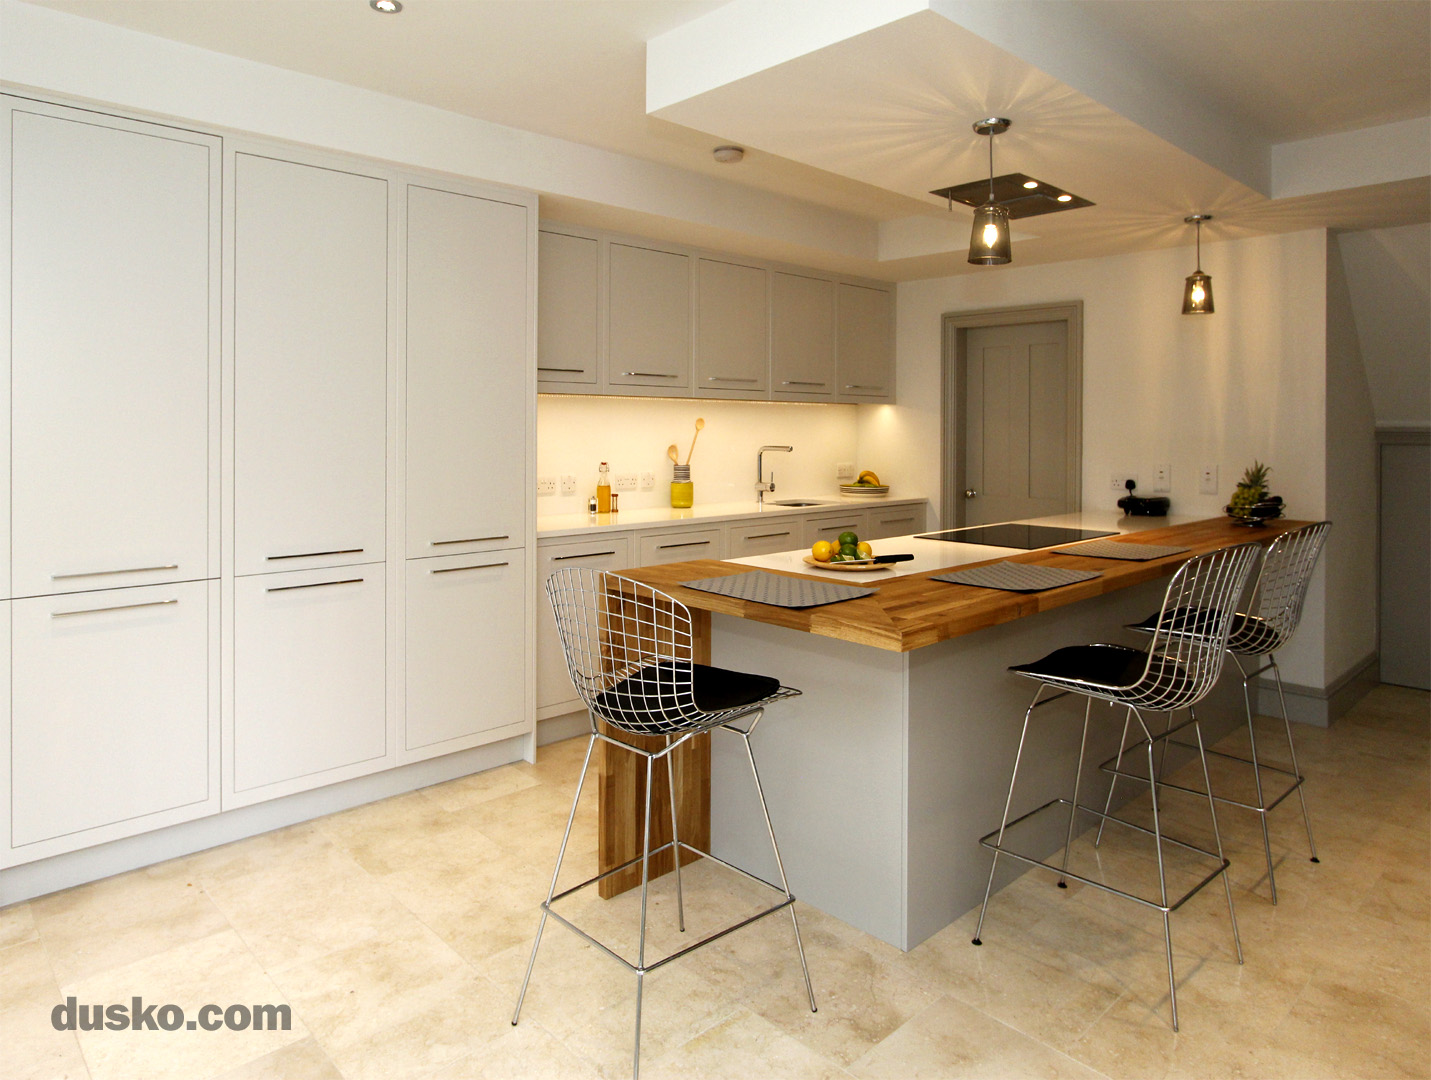 Contemporary Open Plan Kitchen and Dining Area in Handforth, Cheshire Integrated Fridge Freezer